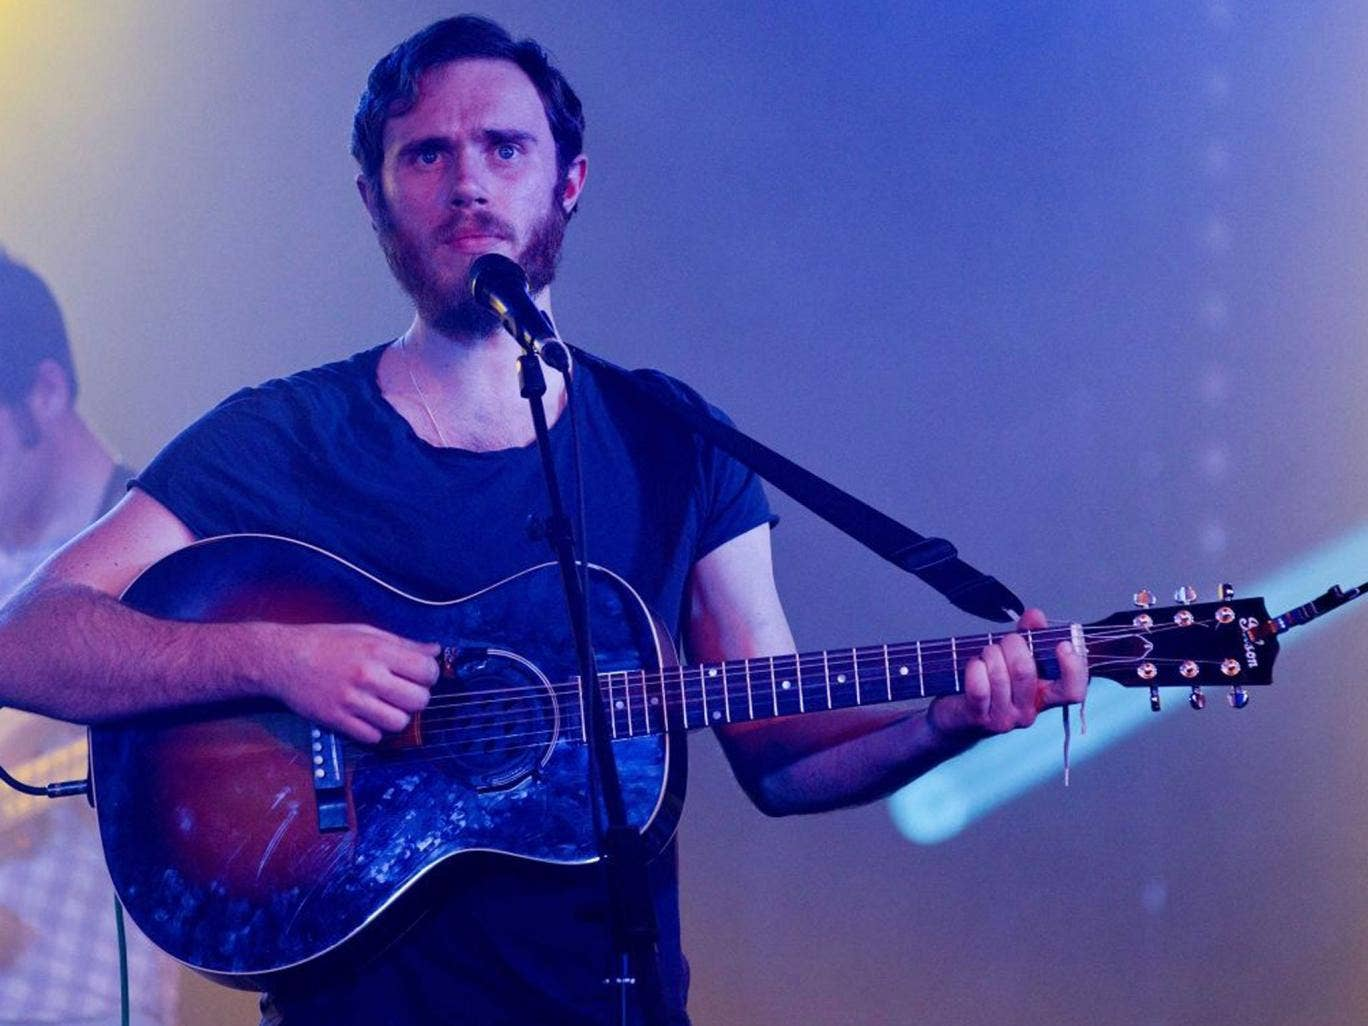 James Vincent McMorrow brings soaring vocal lines to his latest track